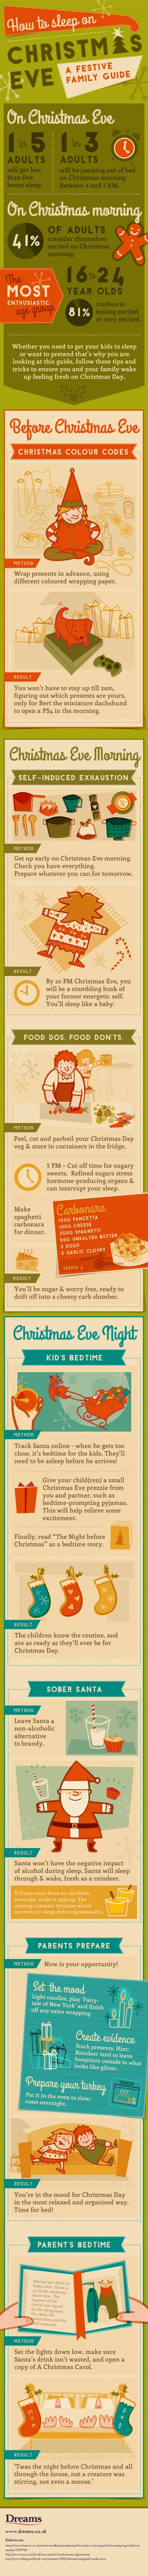 How to sleep on christmas eve infographic